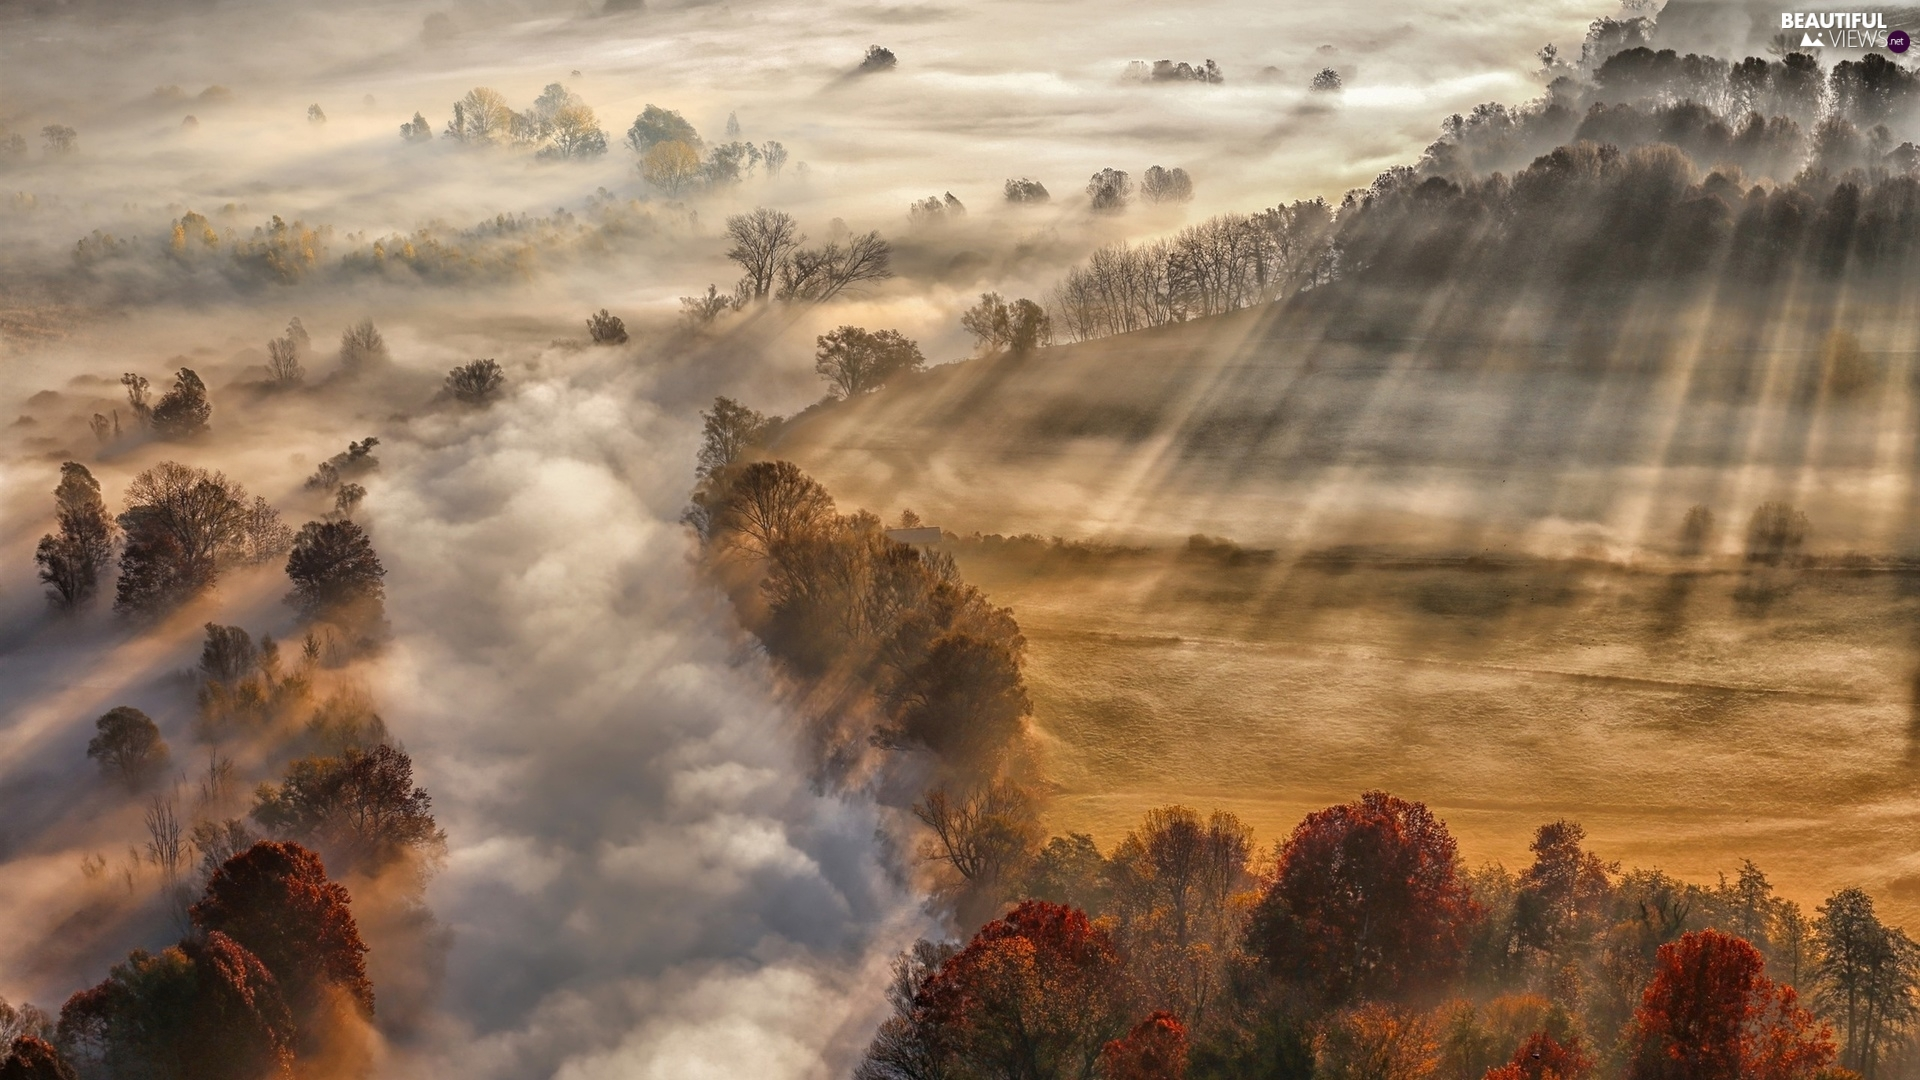 morning, autumn, trees, viewes, Sunlight, Fog